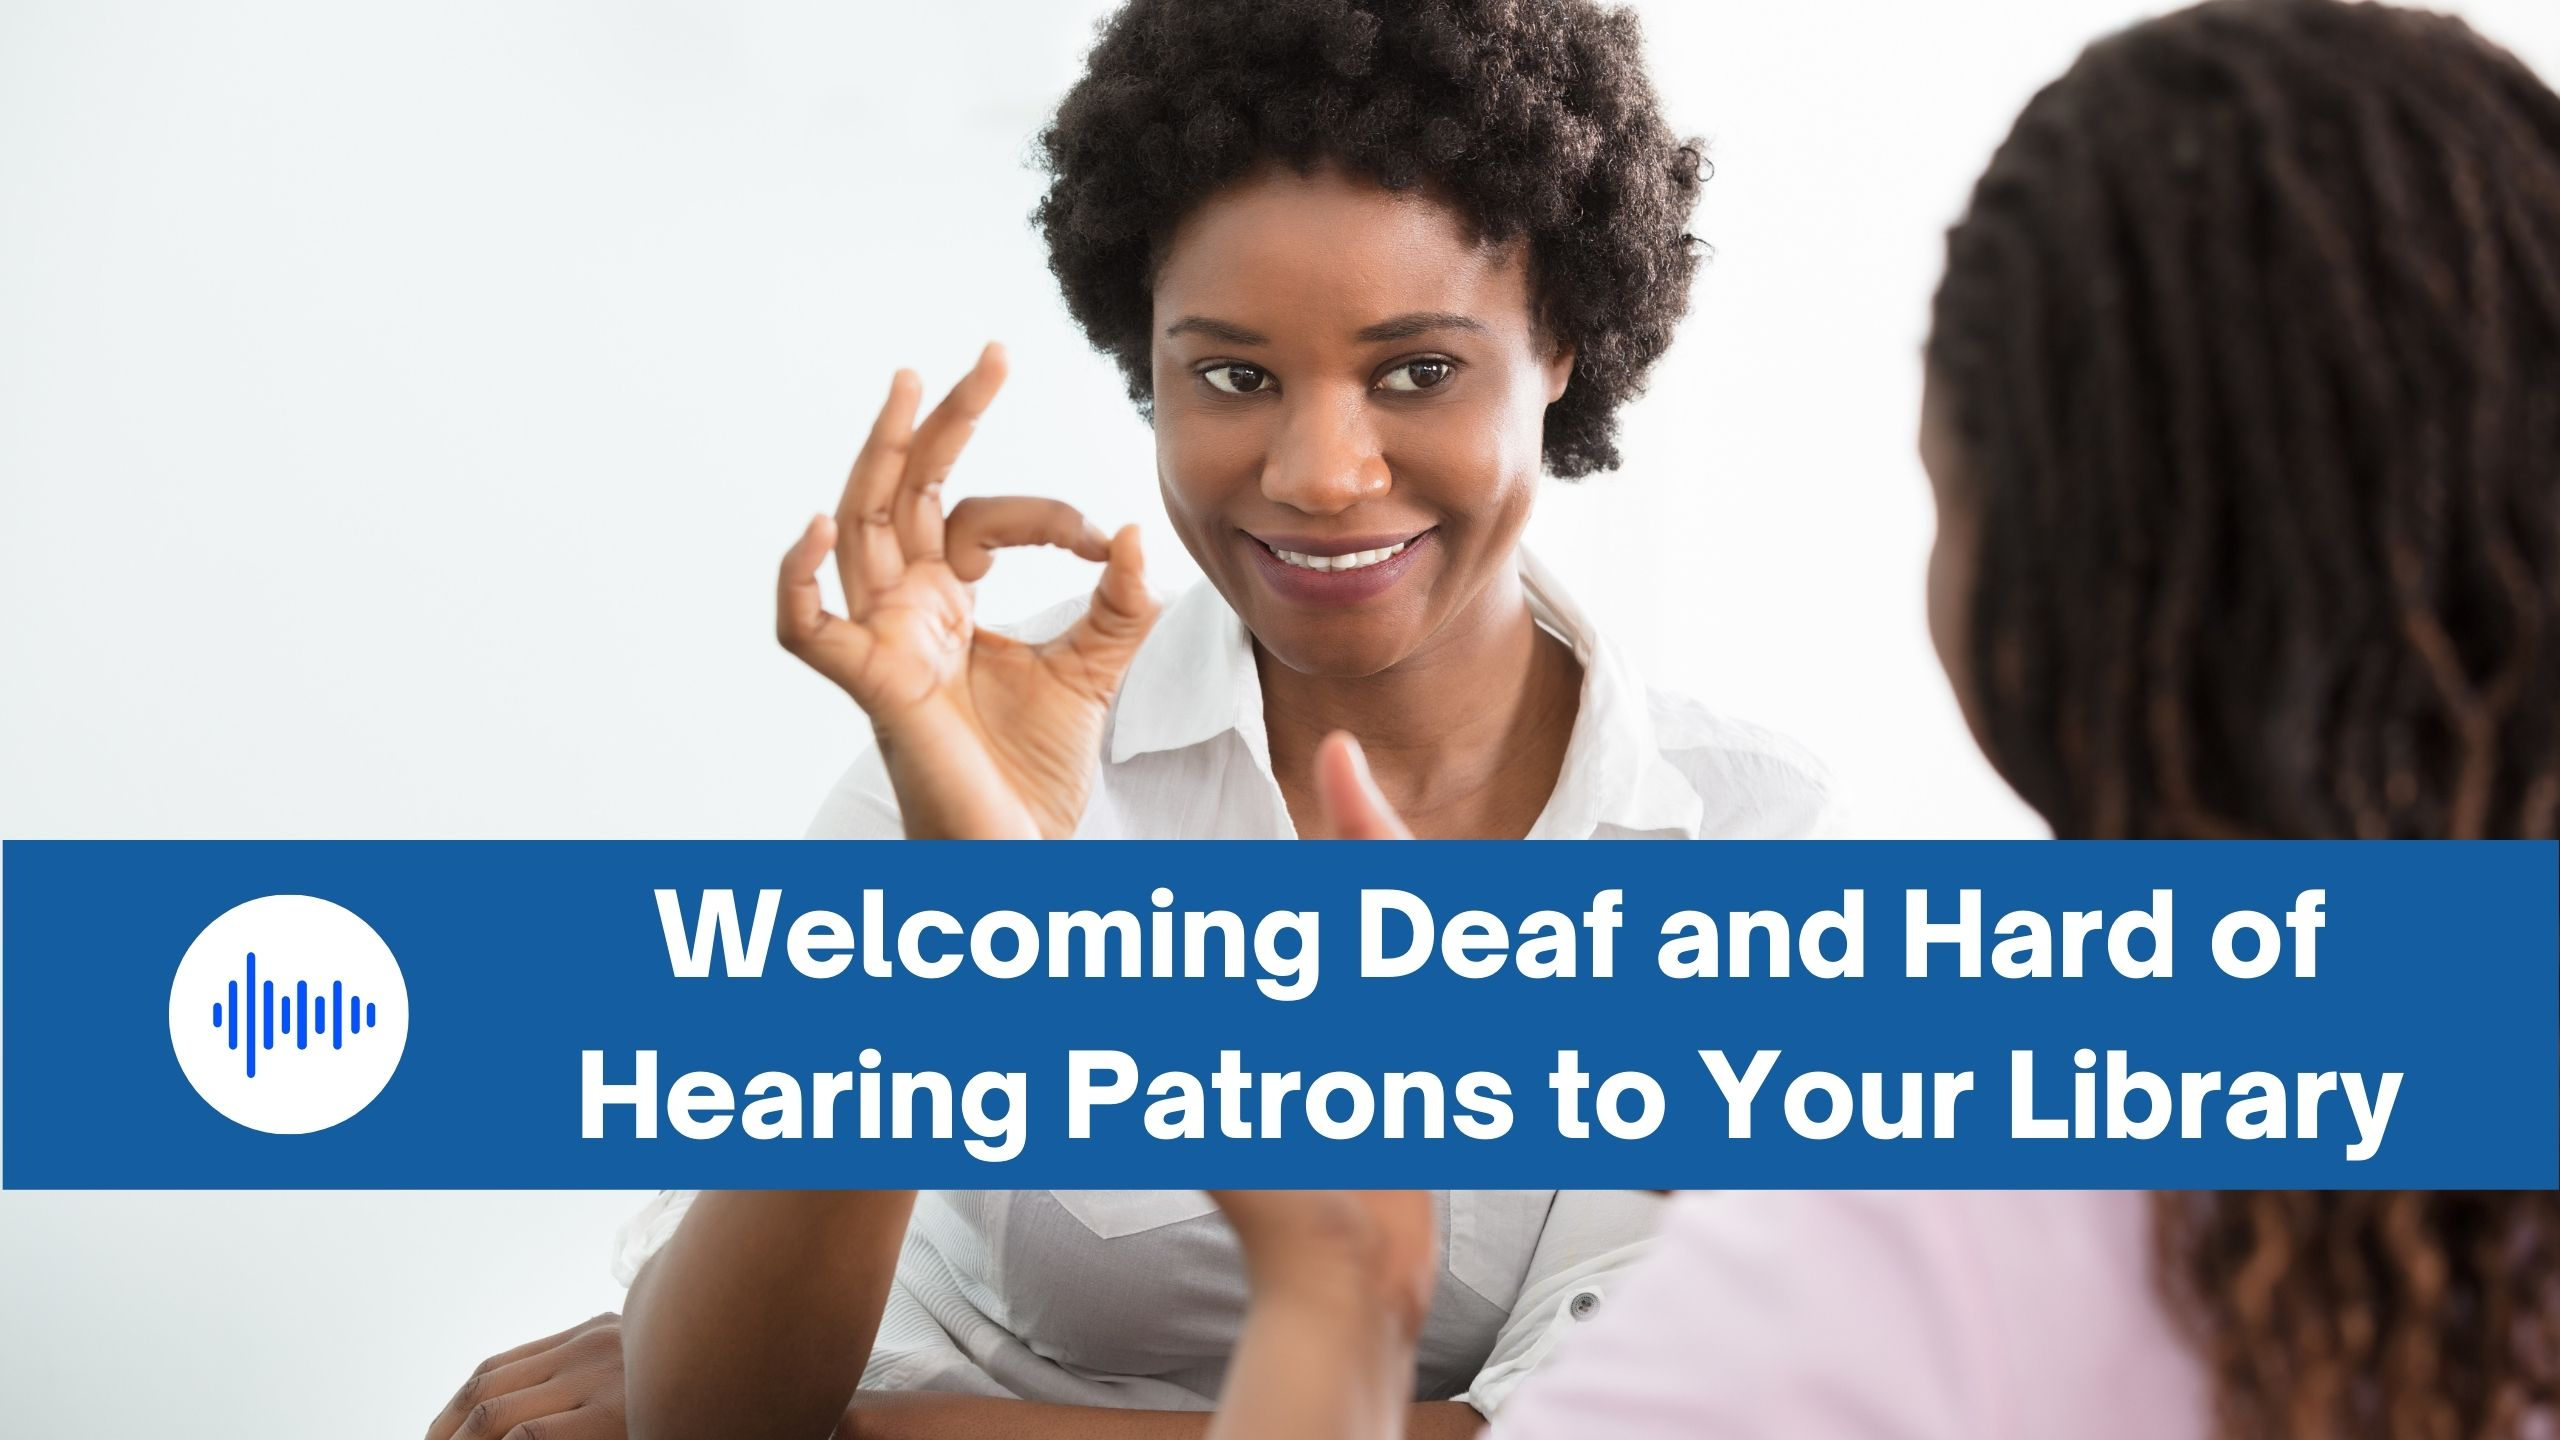 Welcoming Deaf and Hard of Hearing Patrons to Your Library